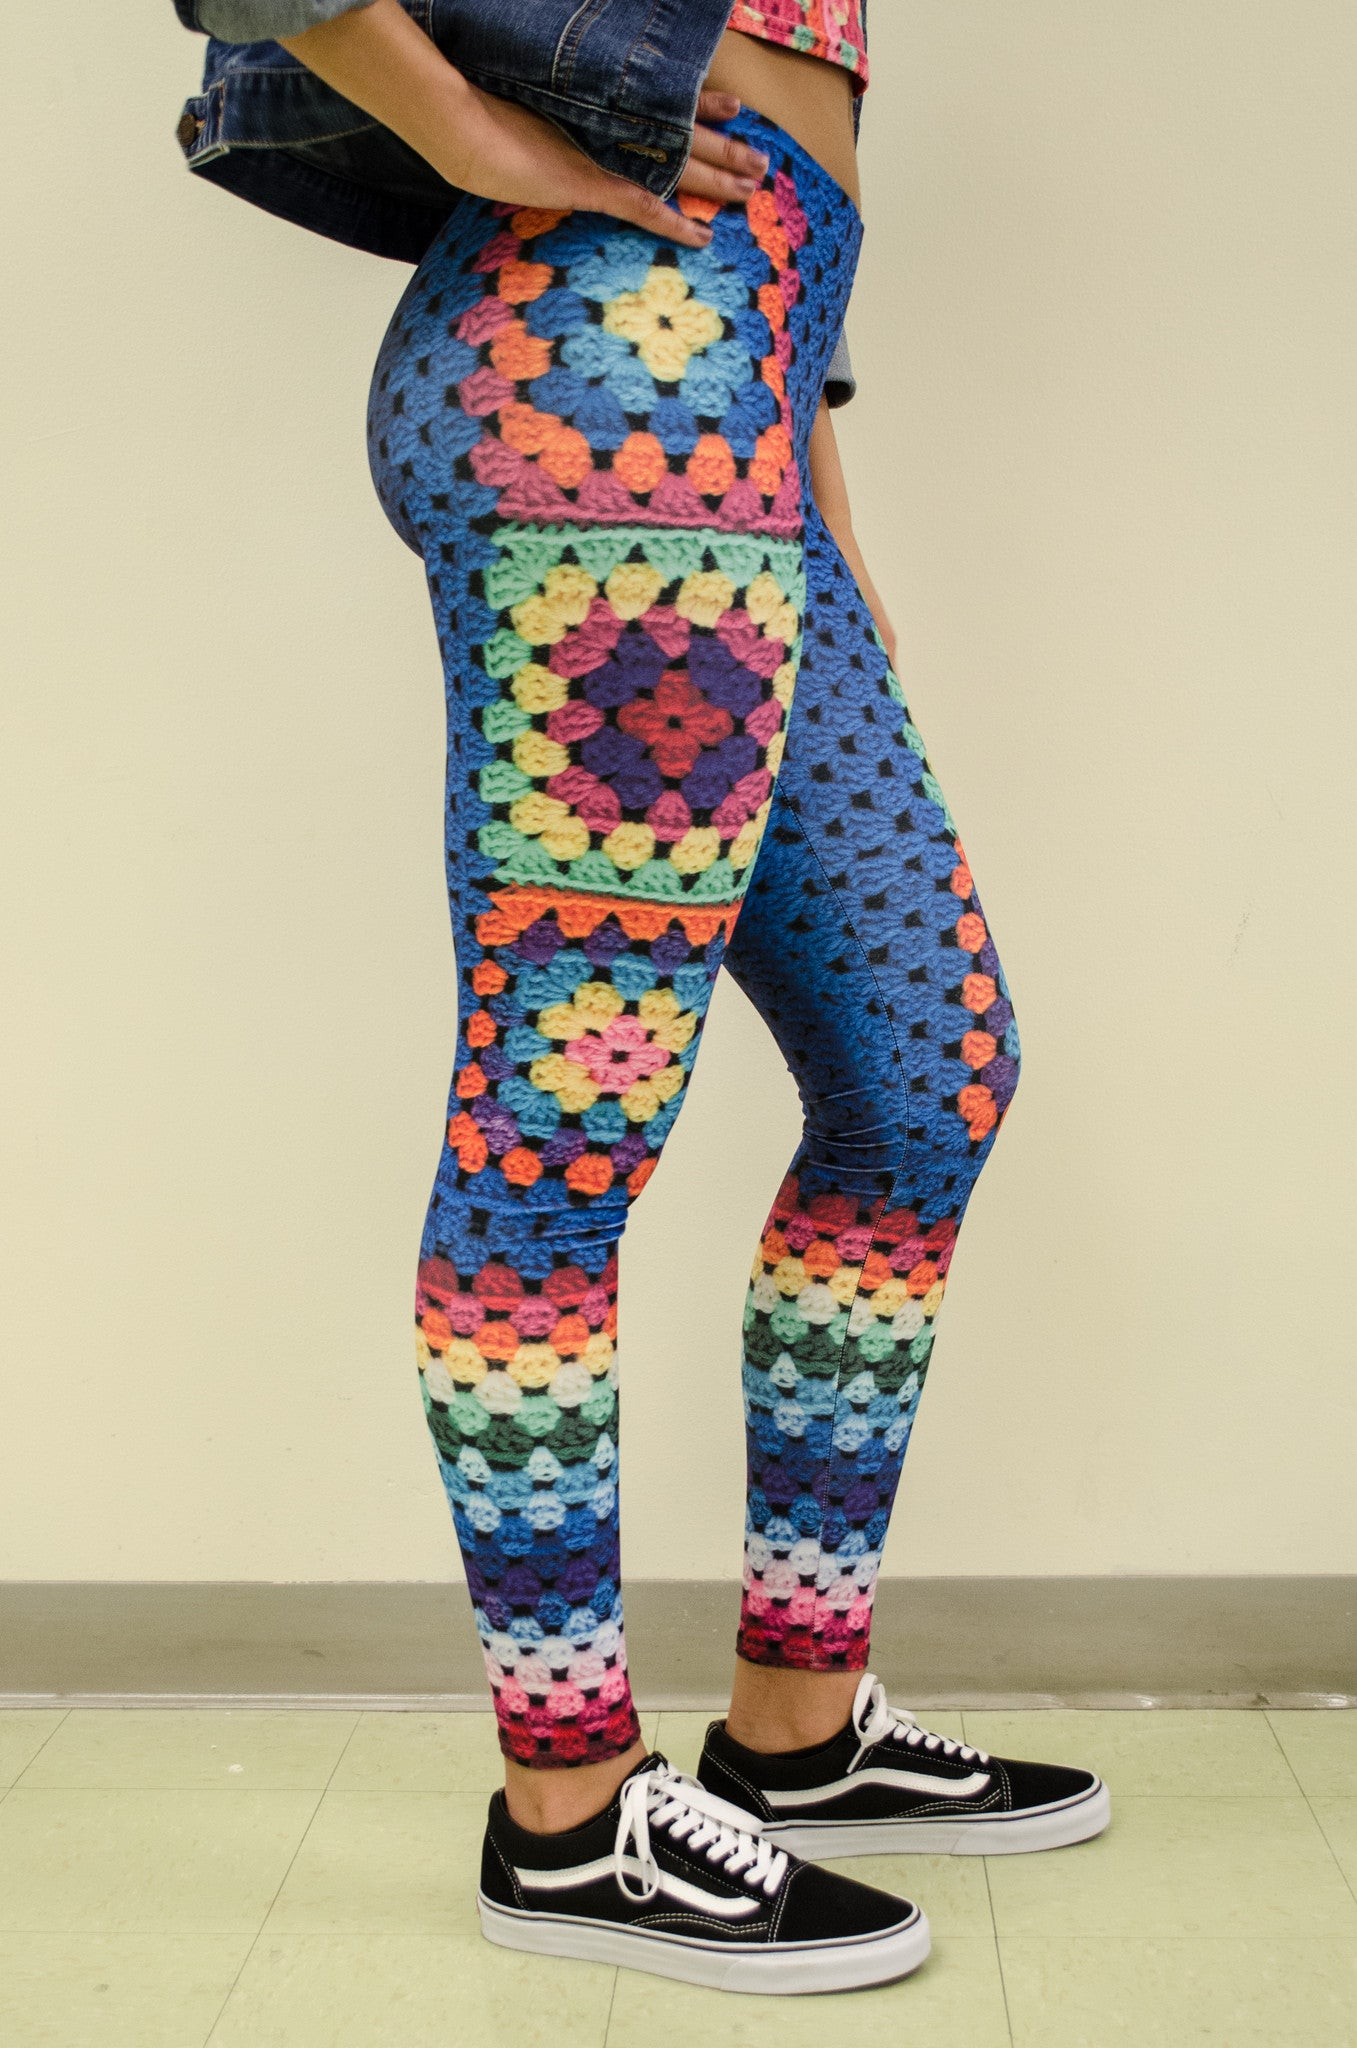 Snapdragon Brand Clothing Granny Square Crochet Print gold leggings in style Snappy features a 1970s vintage feel and a rainbow of colors. Made of comfortable spandex.